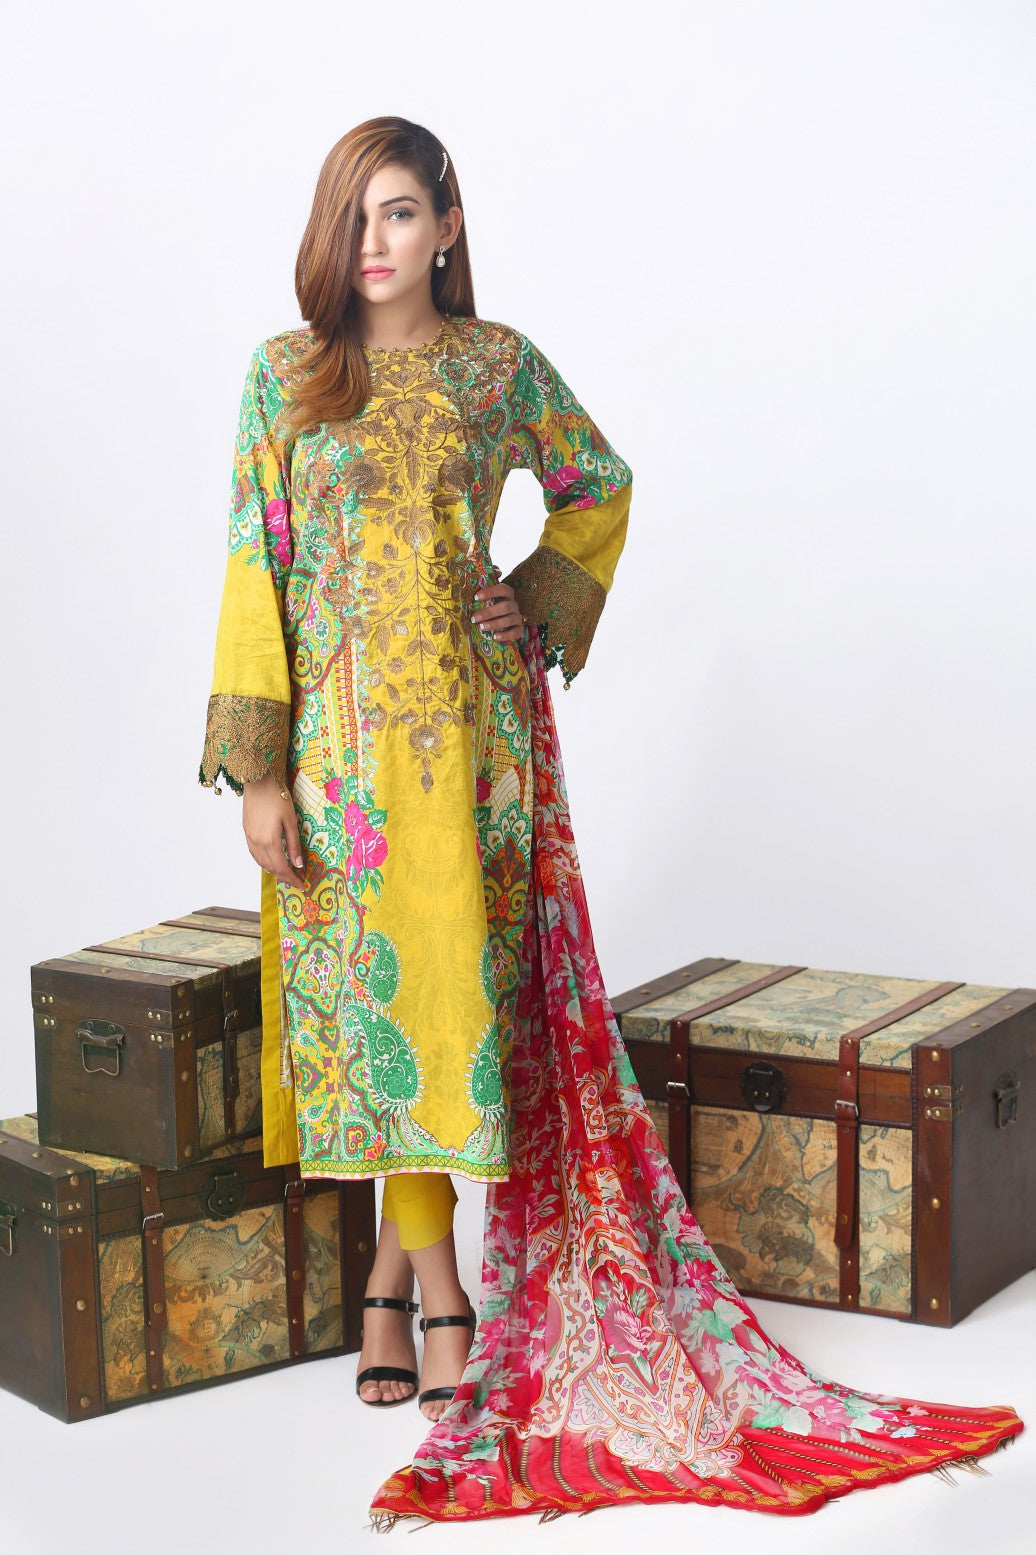 Alkaram Studio - Olive Luxury Embroidered Suit Clearance Sale